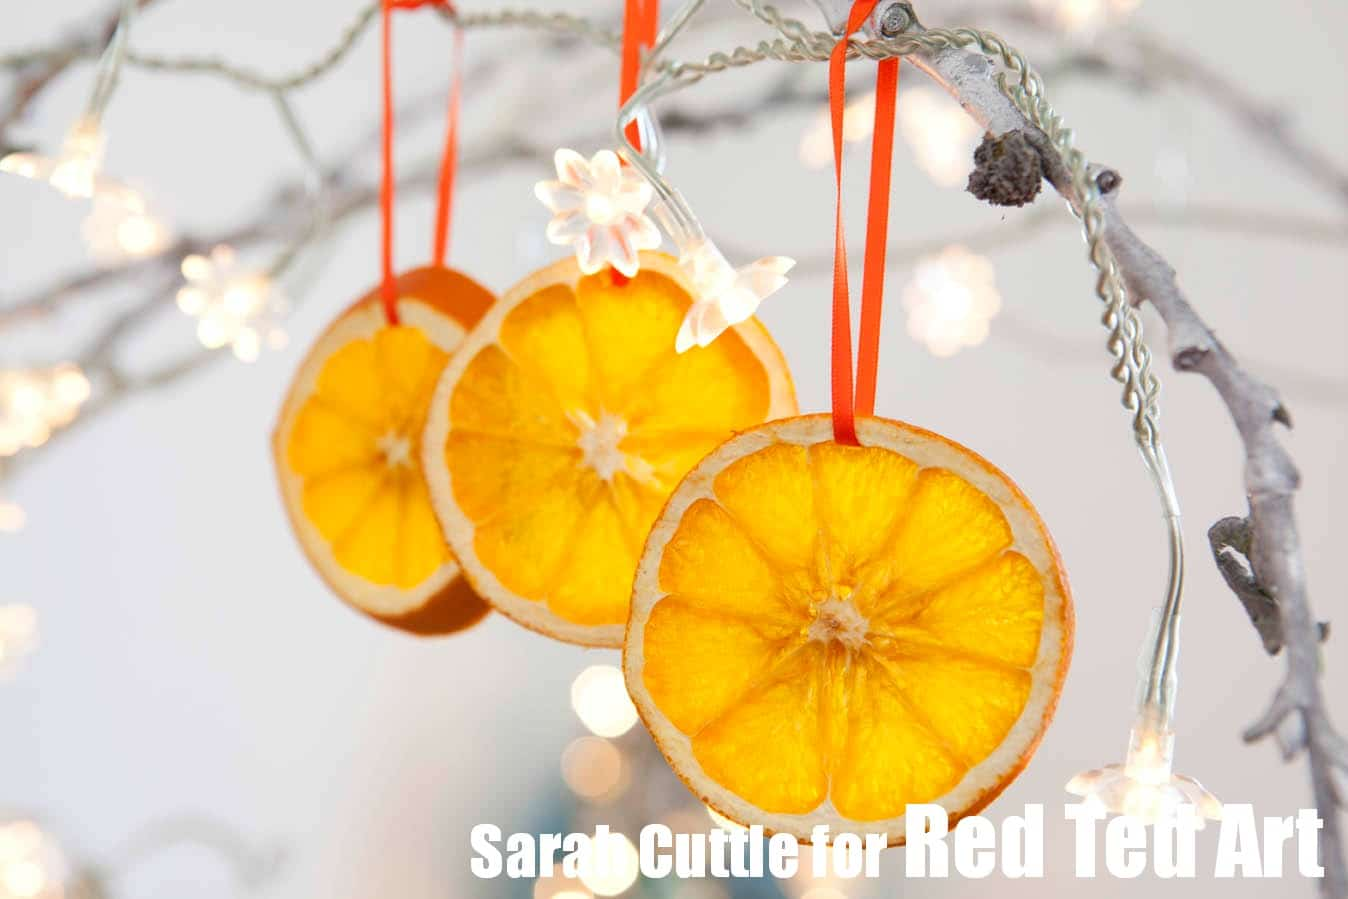 orange slices how to dry orange slices tutorial these make great ornaments or decorations